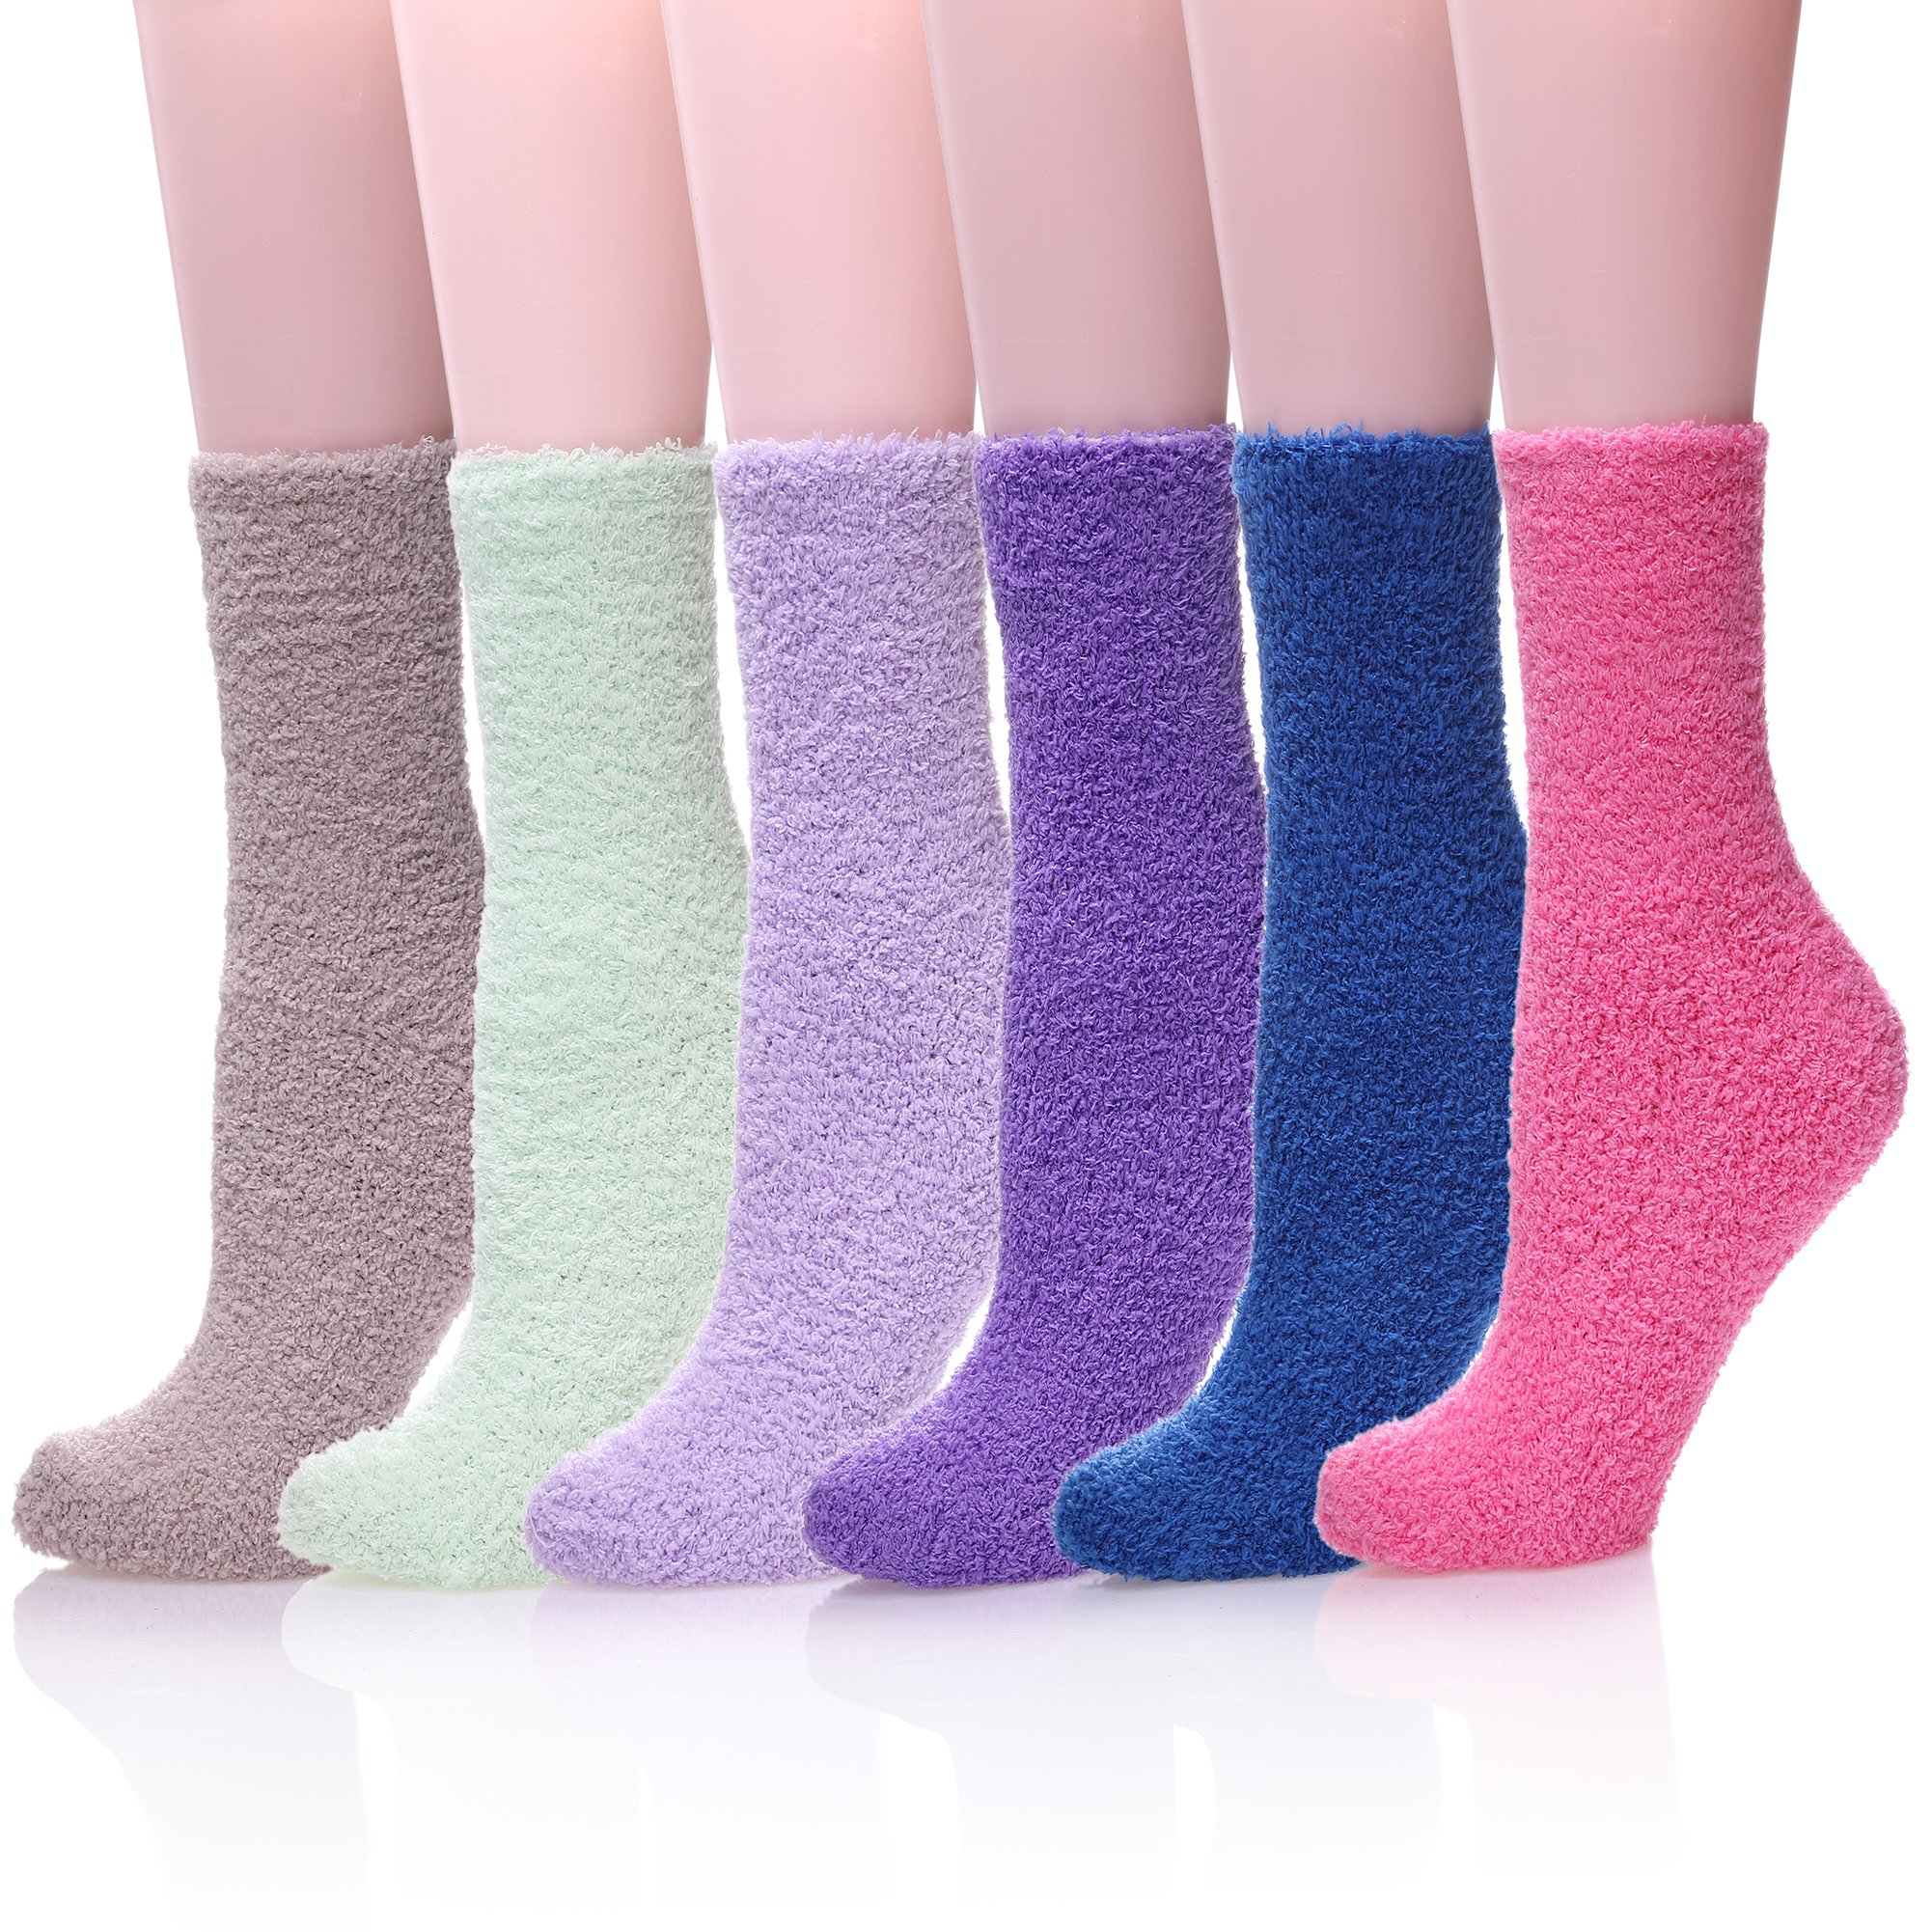 KAKAYAO Womens Super Soft Warm Home Slipper Socks Fuzzy Microfiber Cozy Winter Socks (6 Pairs Solid Colors)